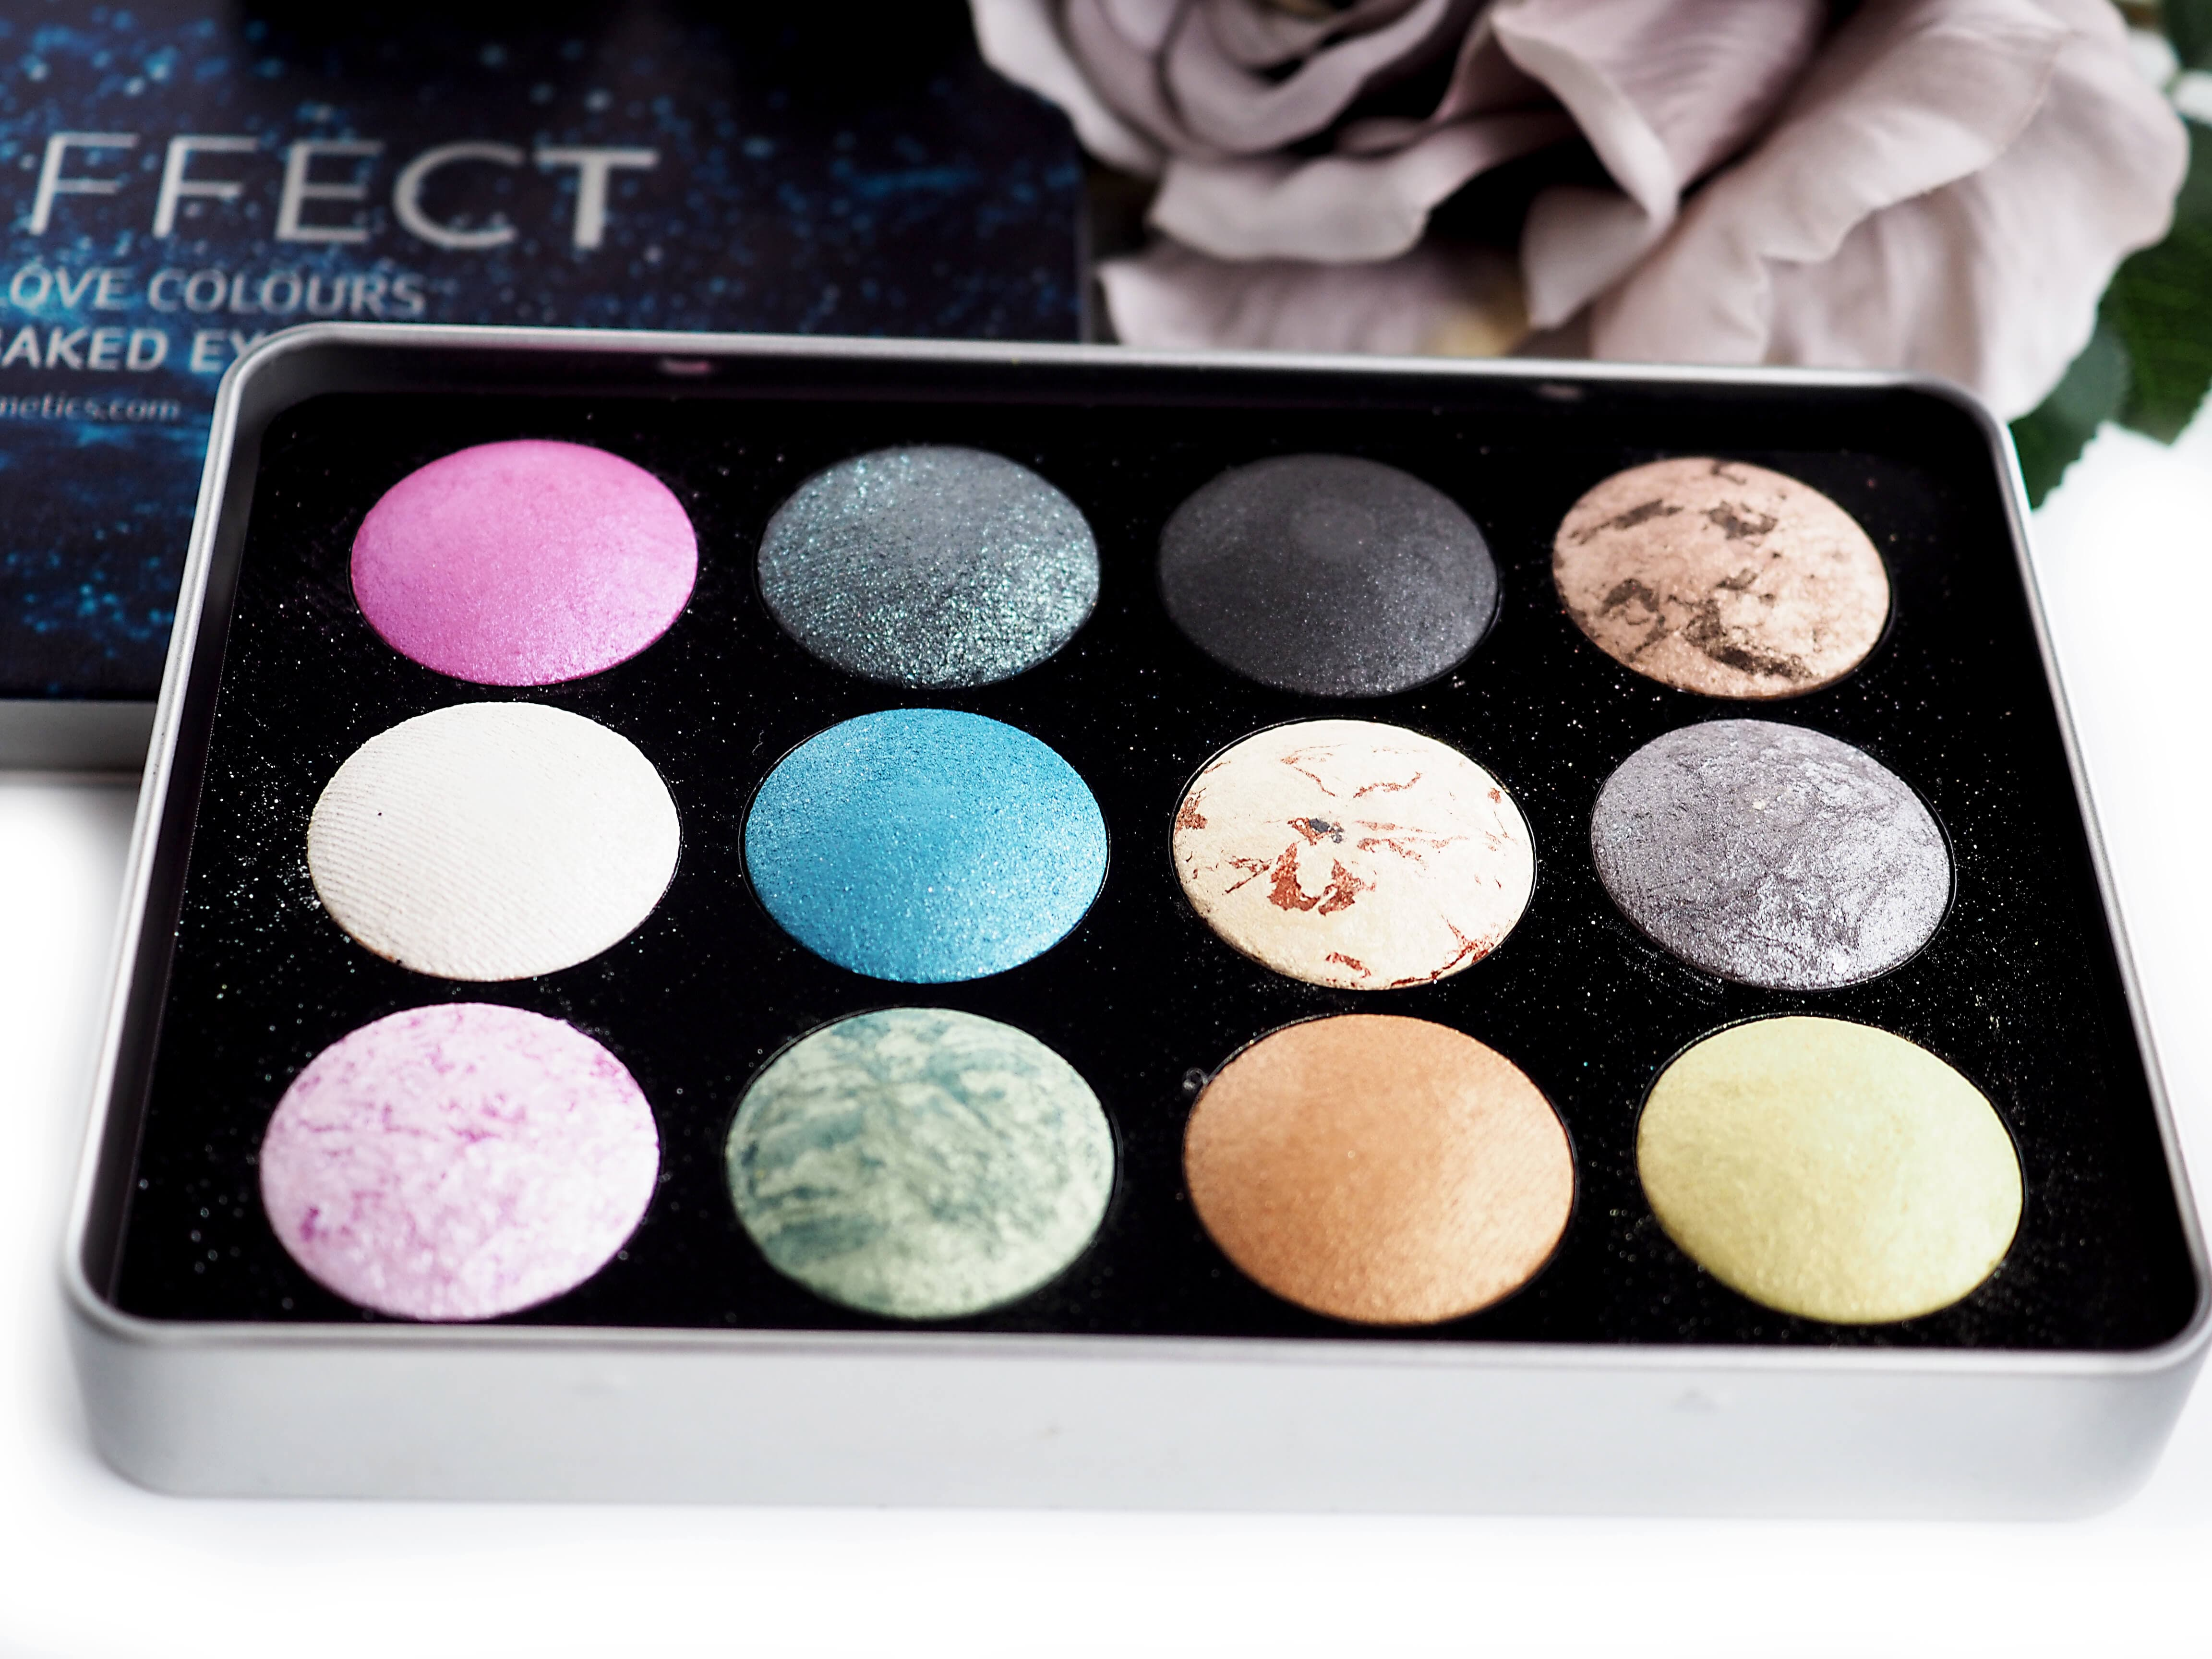 Opinia AFFECT LOVE COLOURS BAKED EYESHADOWS